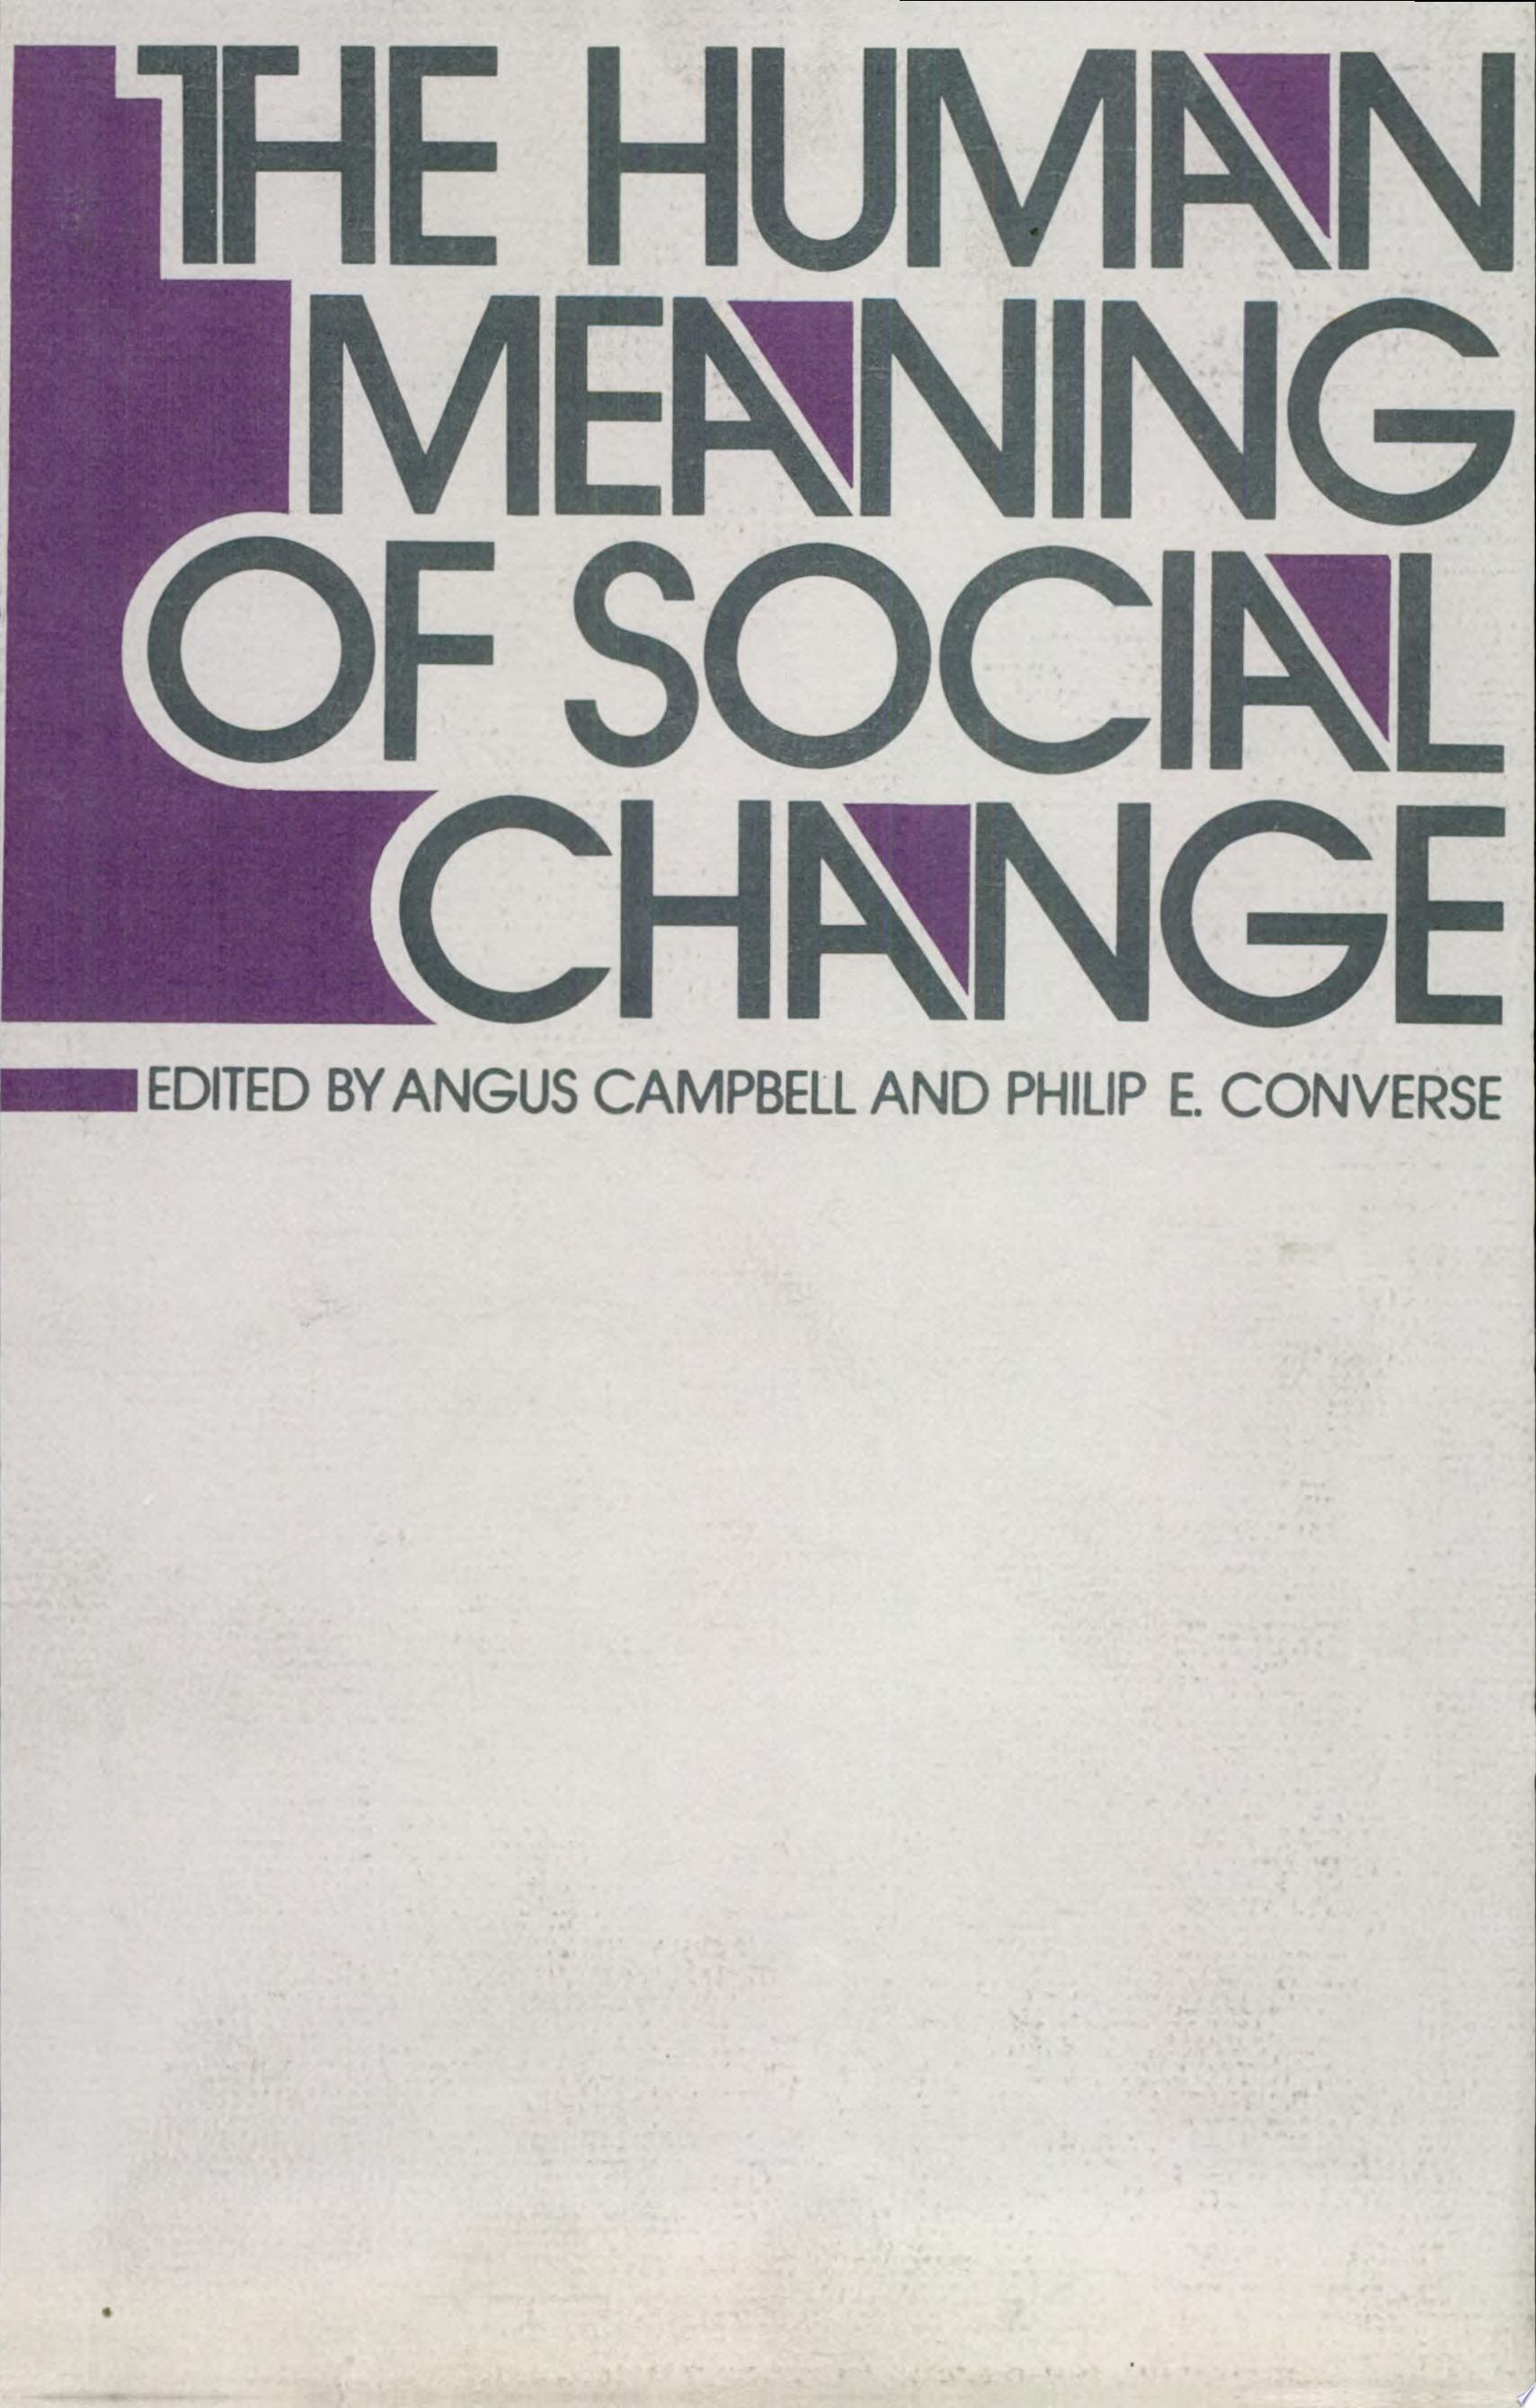 The Human Meaning of Social Change